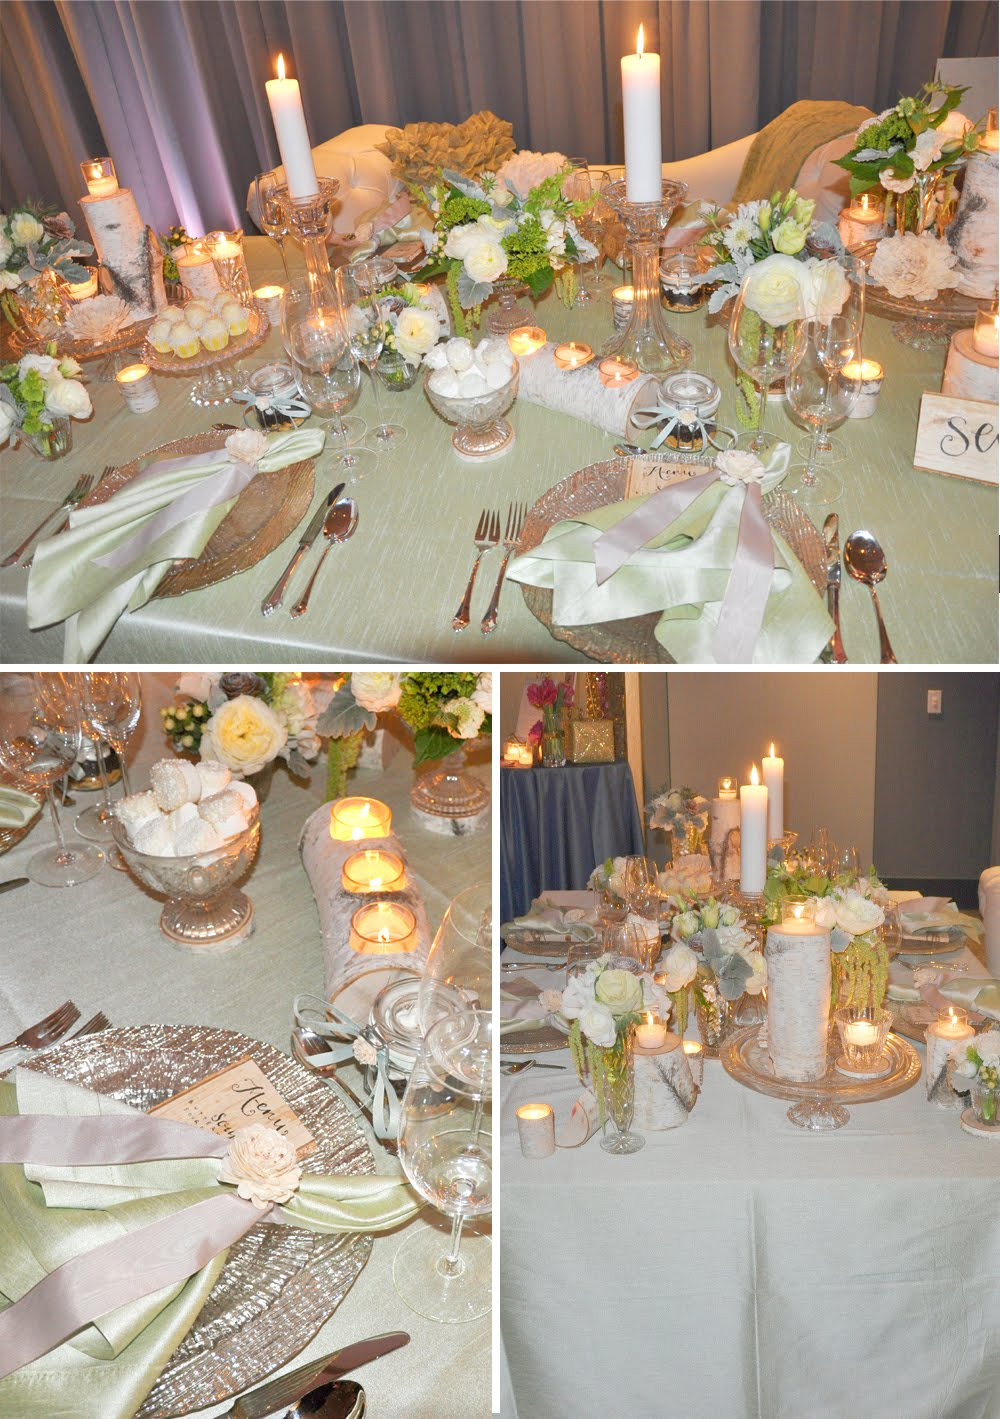 Enchanted events design utterly engaged 39 s snap for Table design for new year